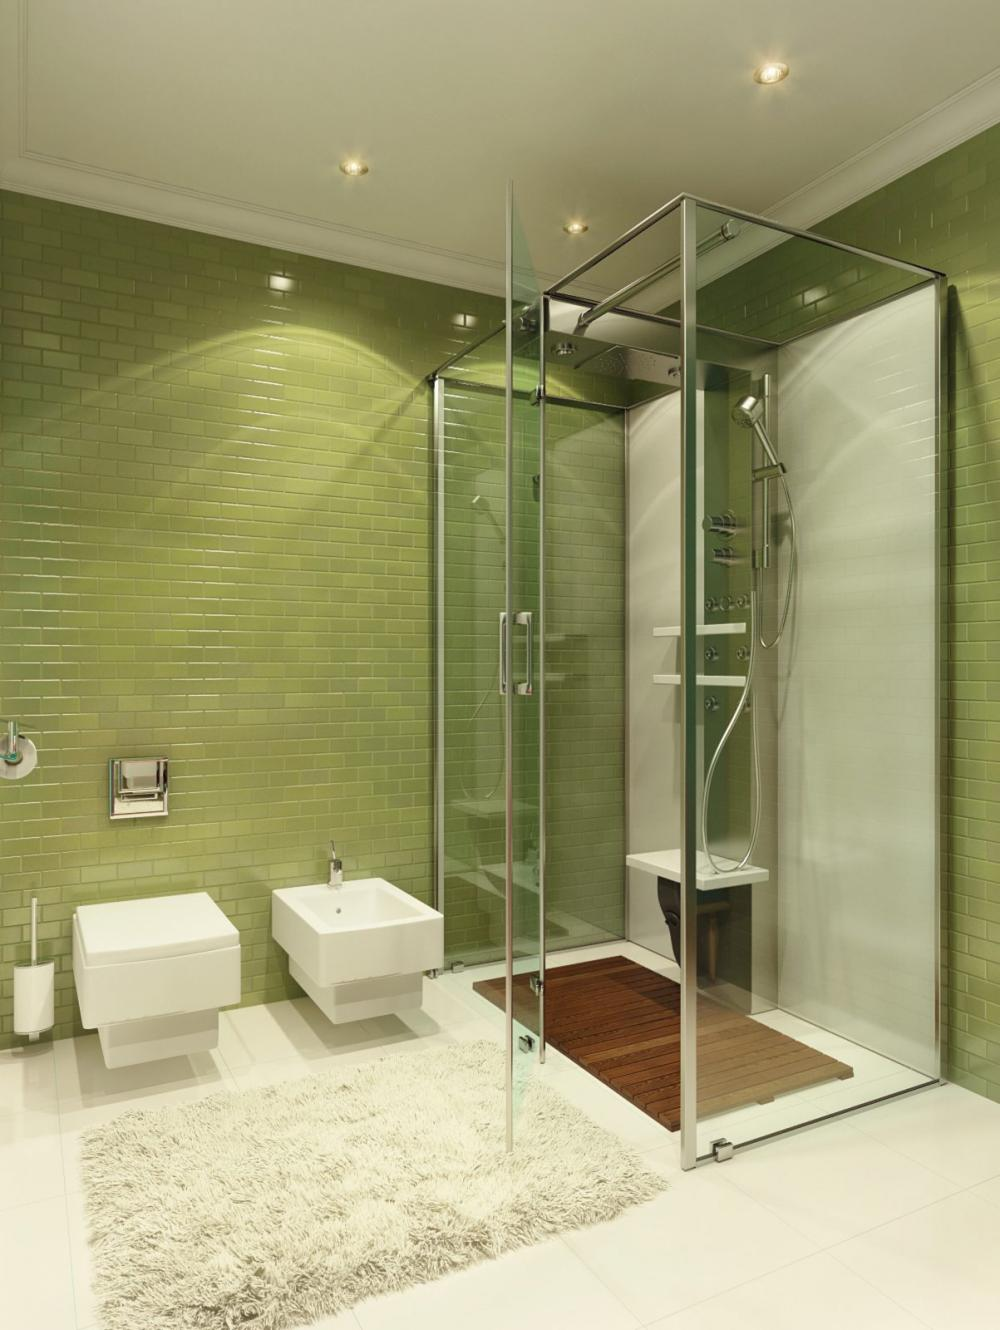 Green and white bathroom -  Bathroom Captovating Barhroom Design With Green Tile Bathroom